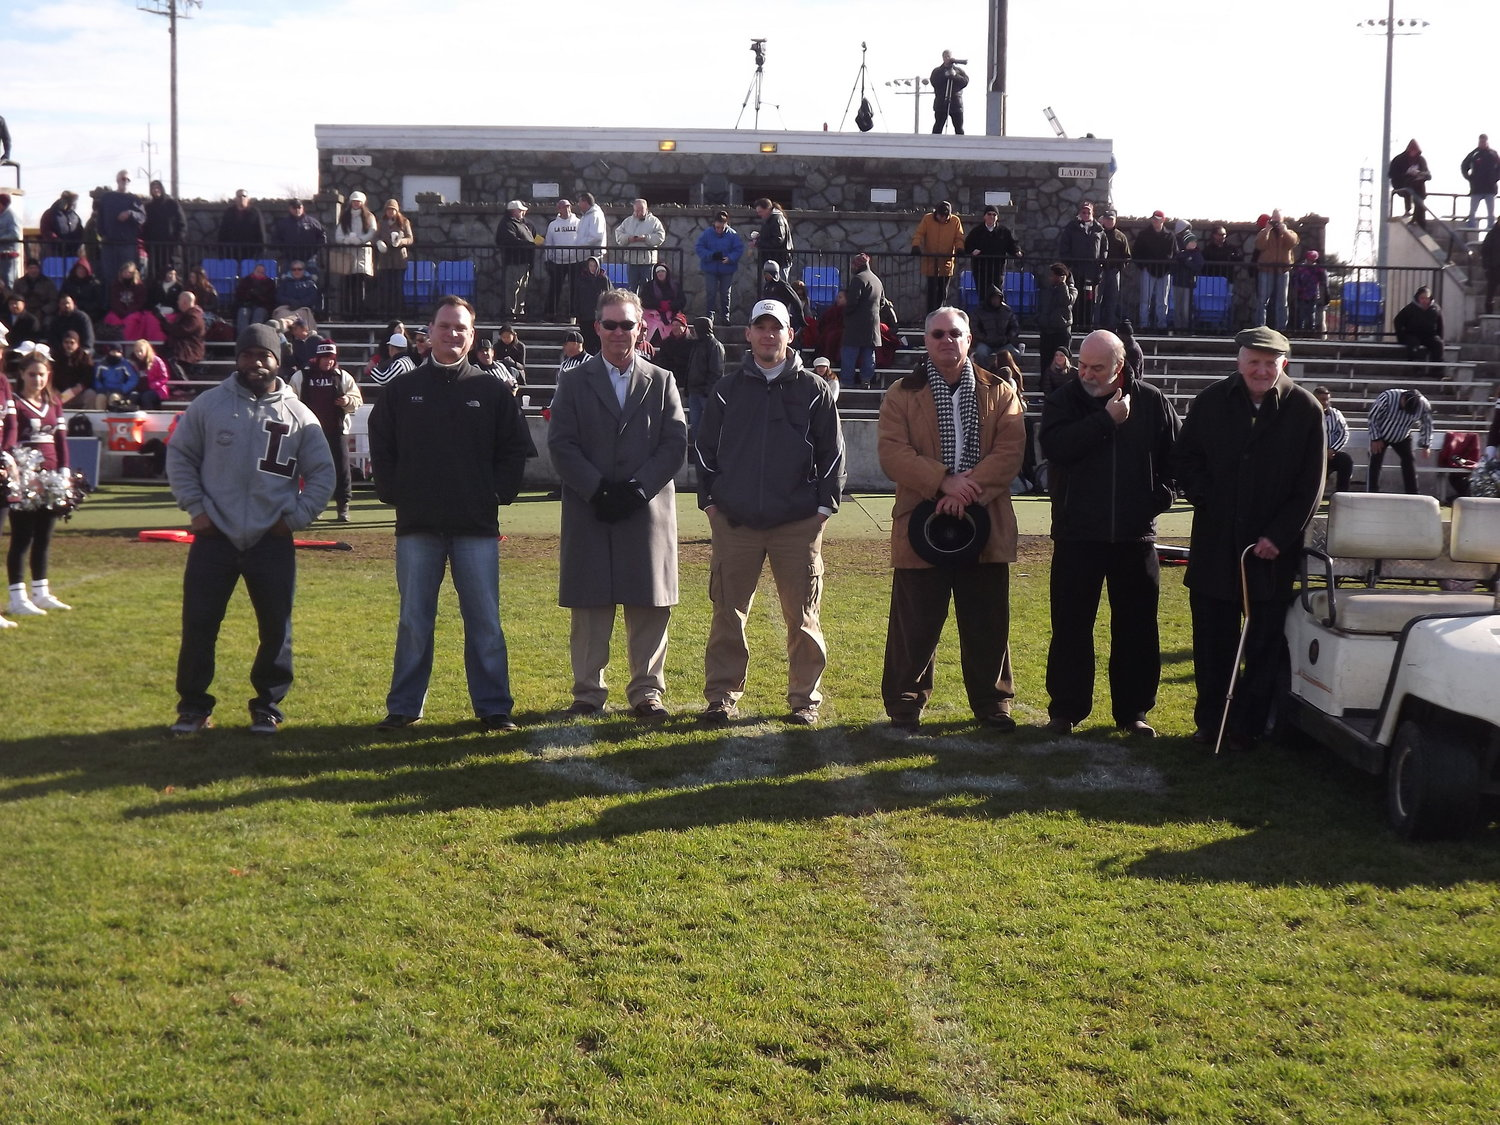 Representing LaSalle legends, 2000s to 1940s, L to R, Lorenzo Perry, Rick Vota, Matt Hannigan, Bill Defley, Al Mello, Dave Sousa and Jim Deffley in 2014